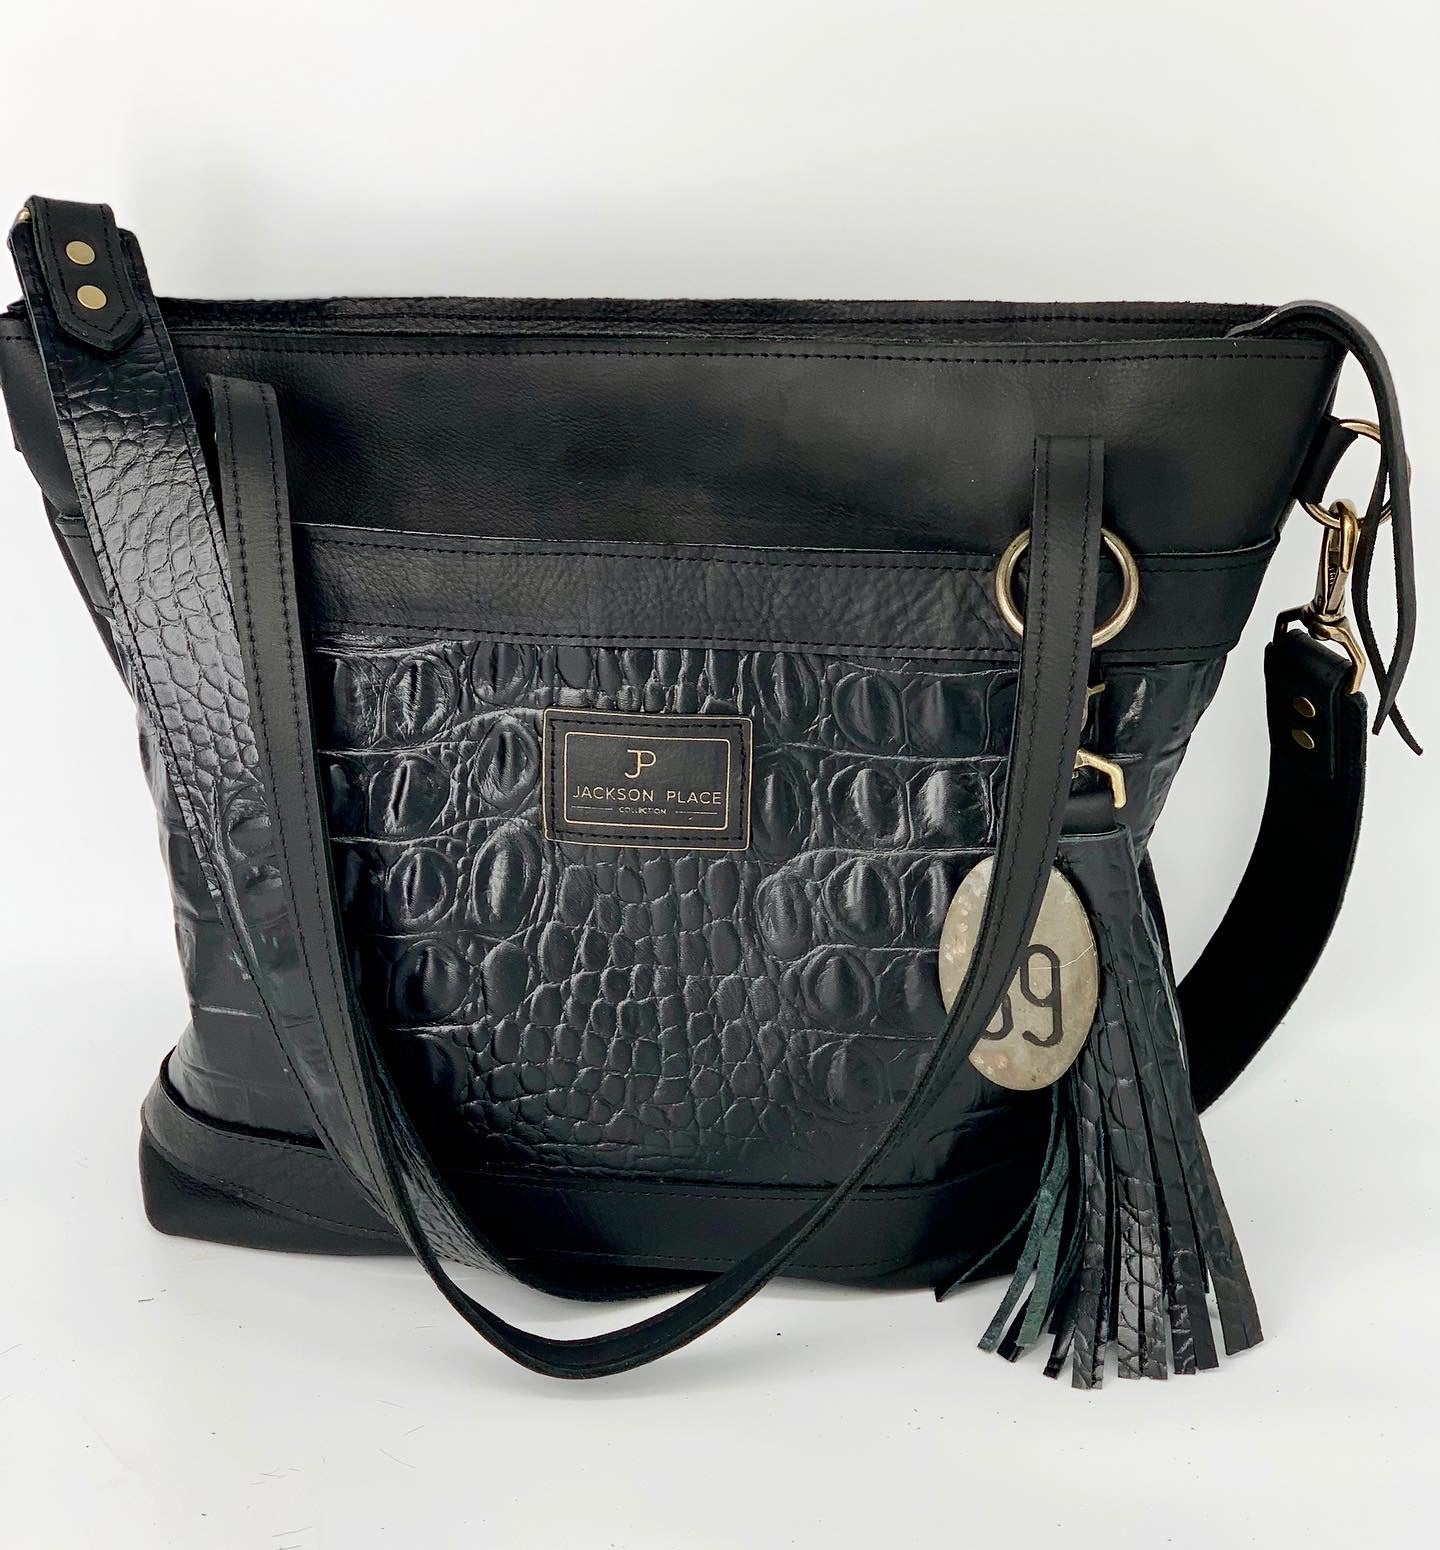 Large Black Croc Embossed Leather Tote Bag with Outside Front Pocket